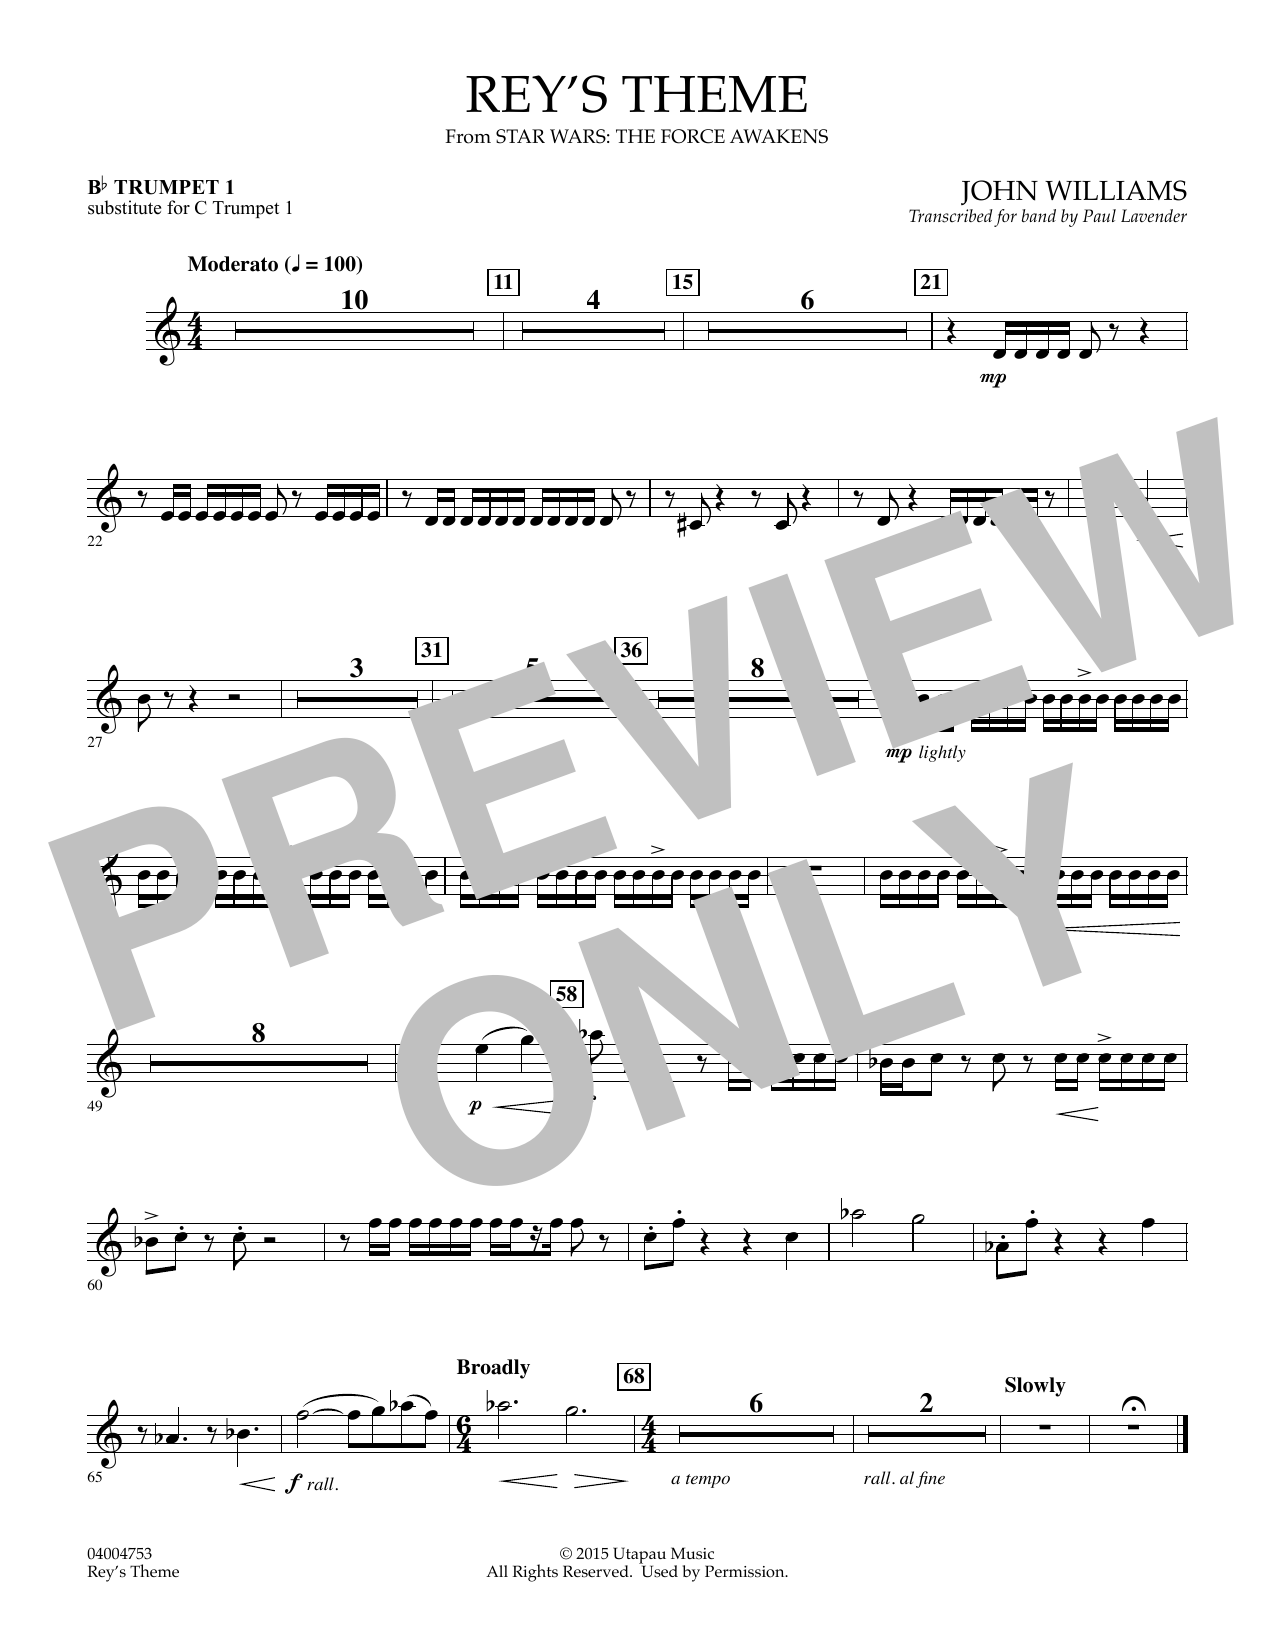 Rey's Theme (from Star Wars: The Force Awakens) - Bb Trumpet 1 (sub. C Tpt. 1) (Concert Band)